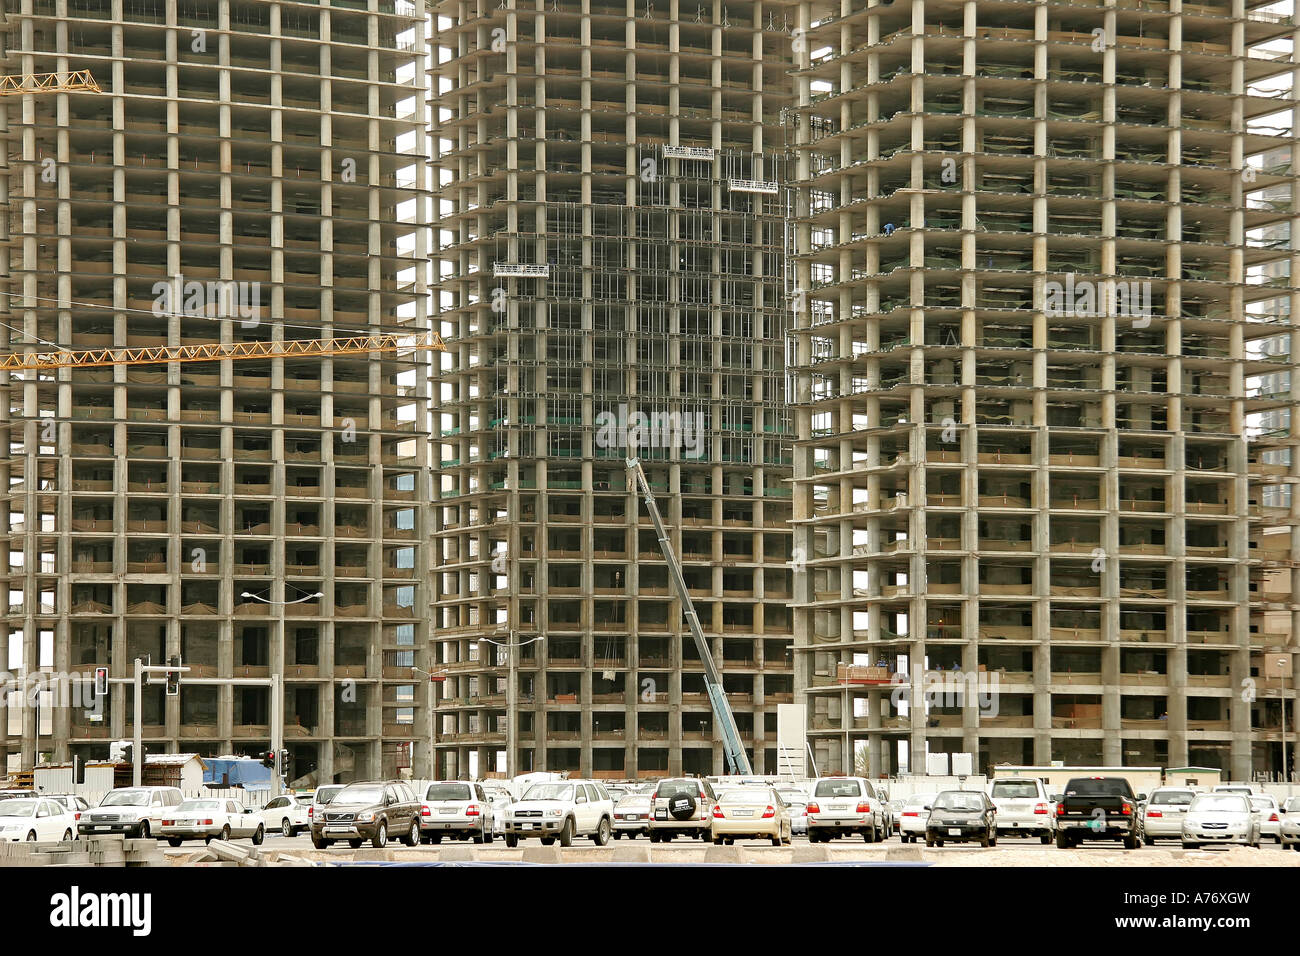 Carcass of three high-rise buildings with parking lot in front, Doha, Qatar, United Arab Emirates - Stock Image